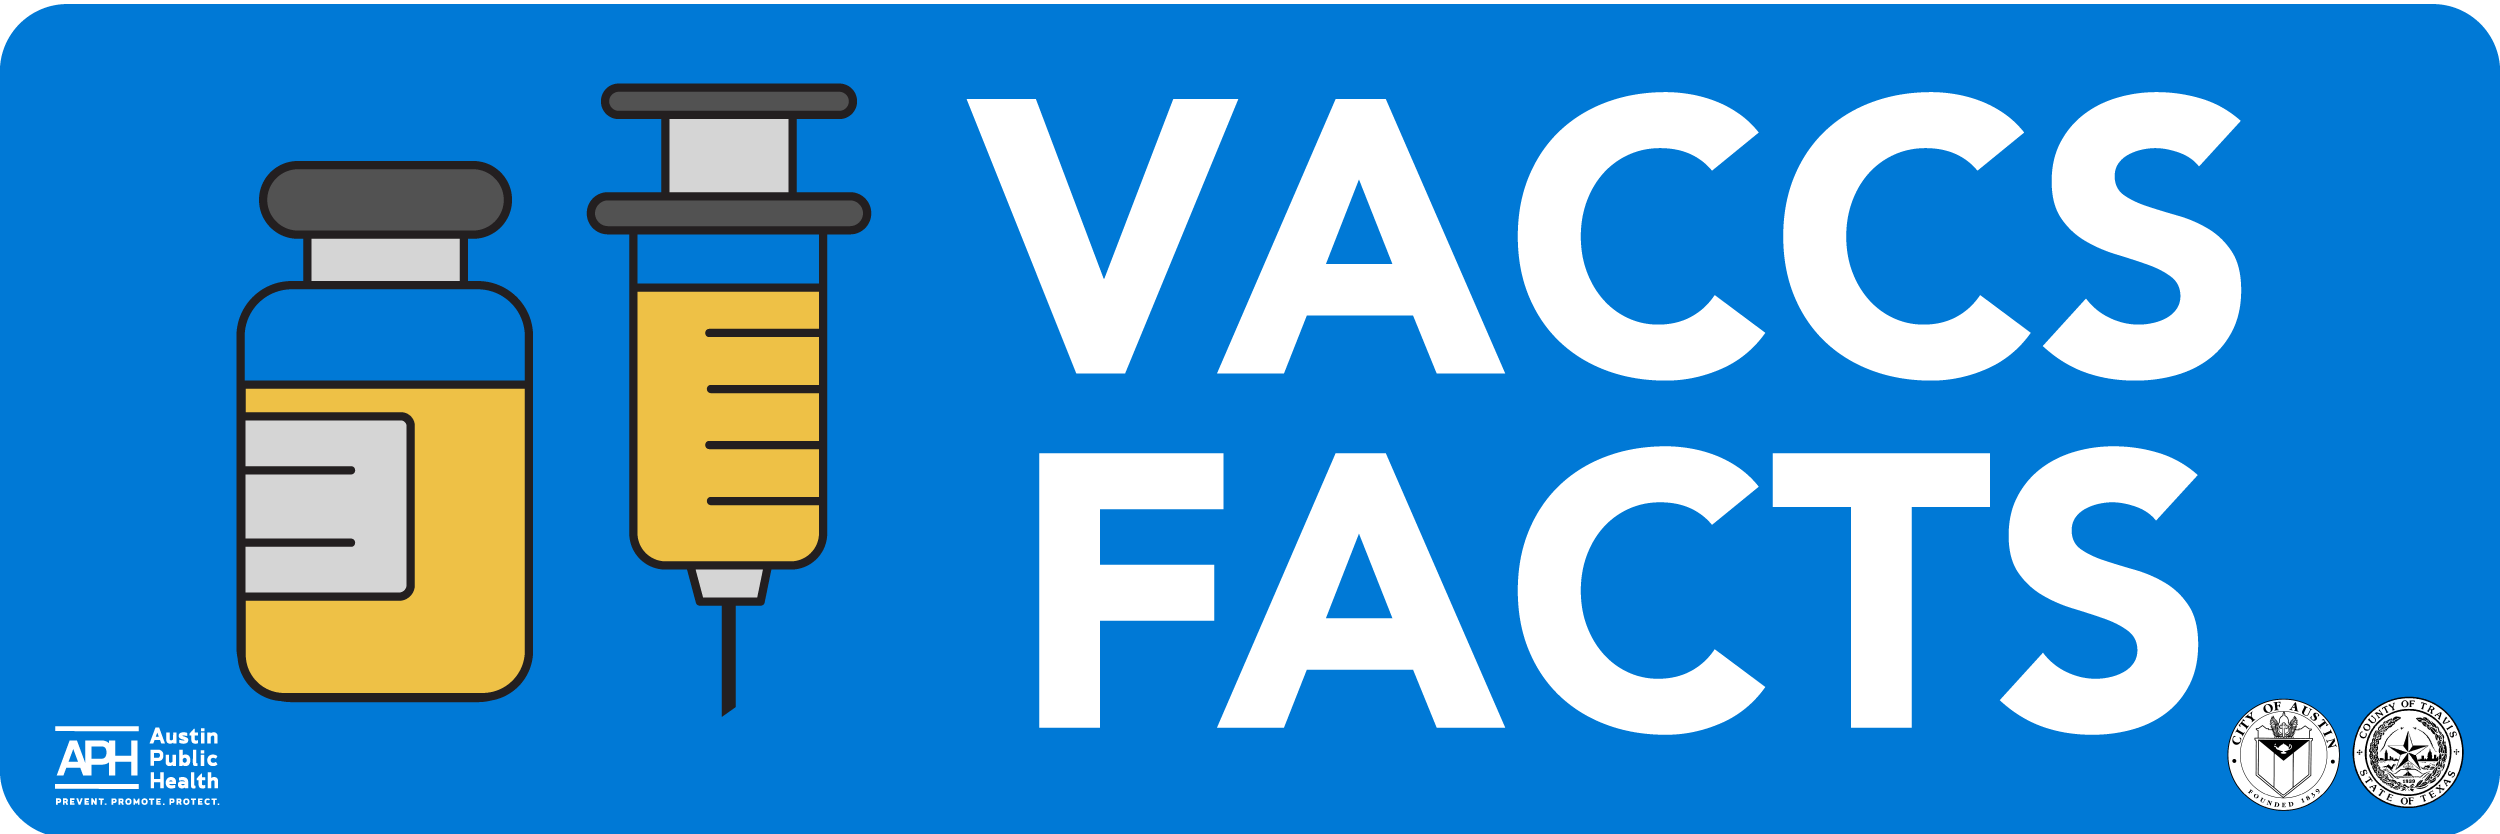 Vaccs Facts text with a vaccine syringe image